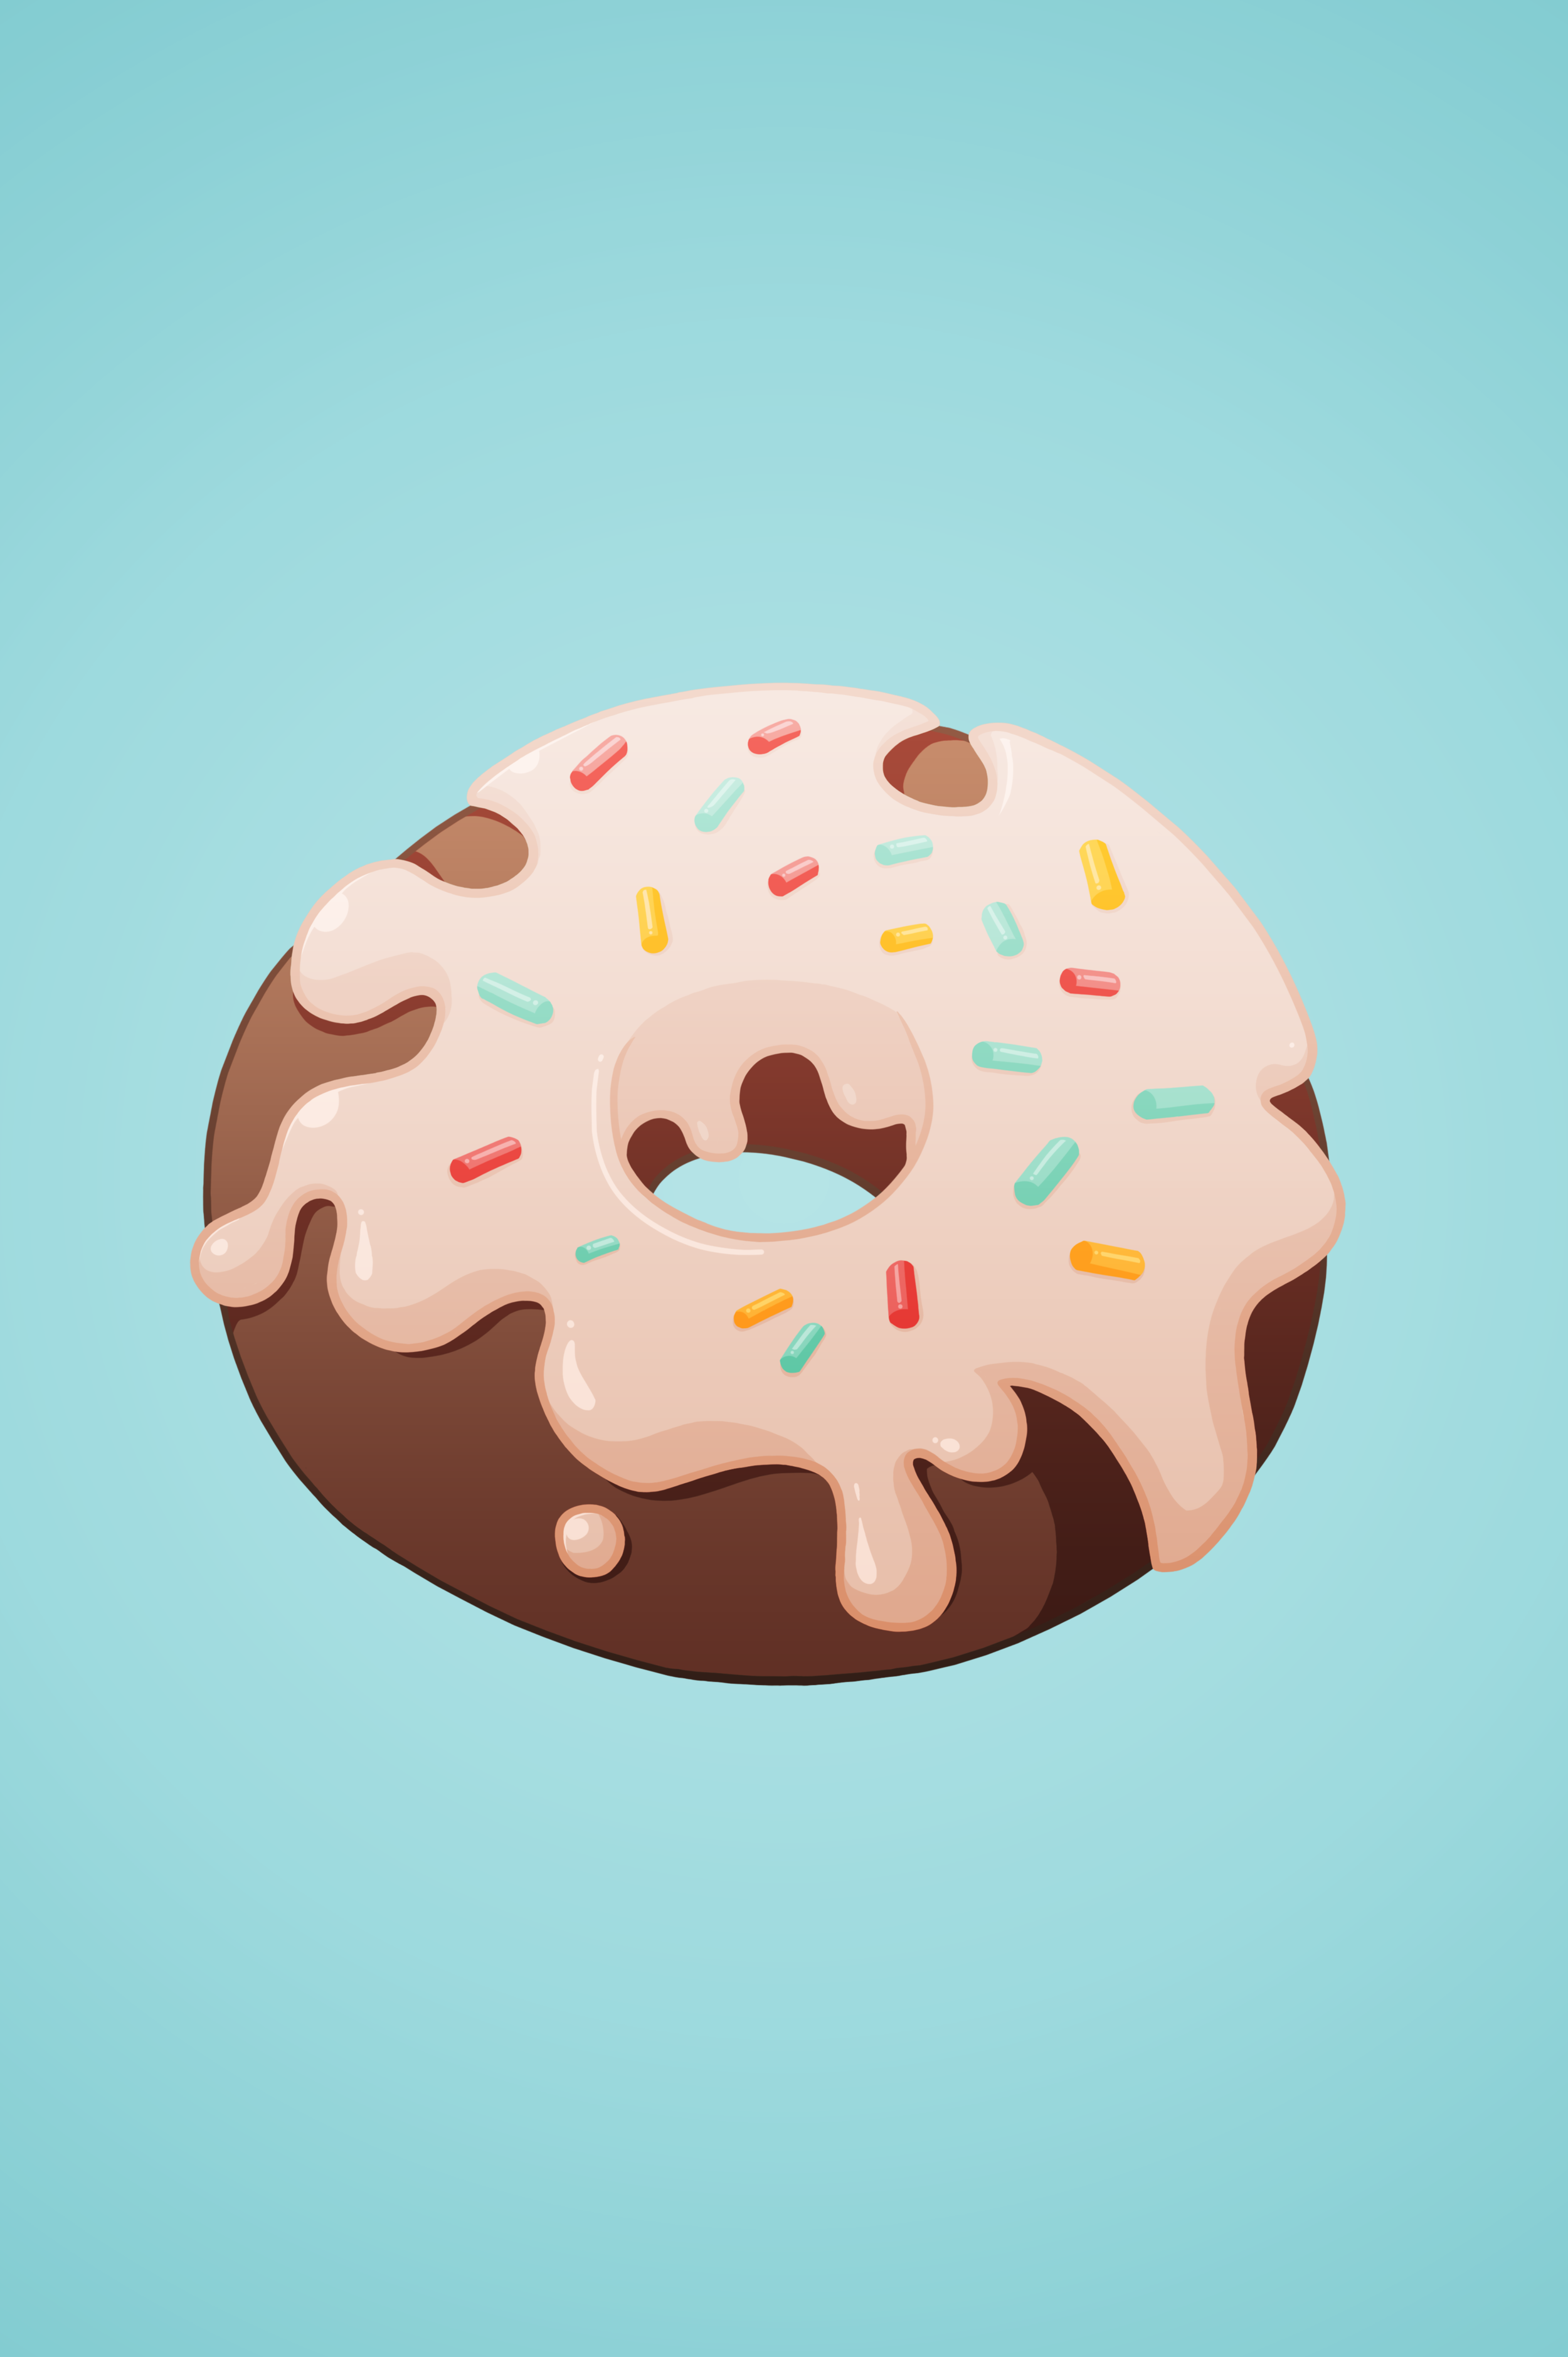 donut01Colour.png